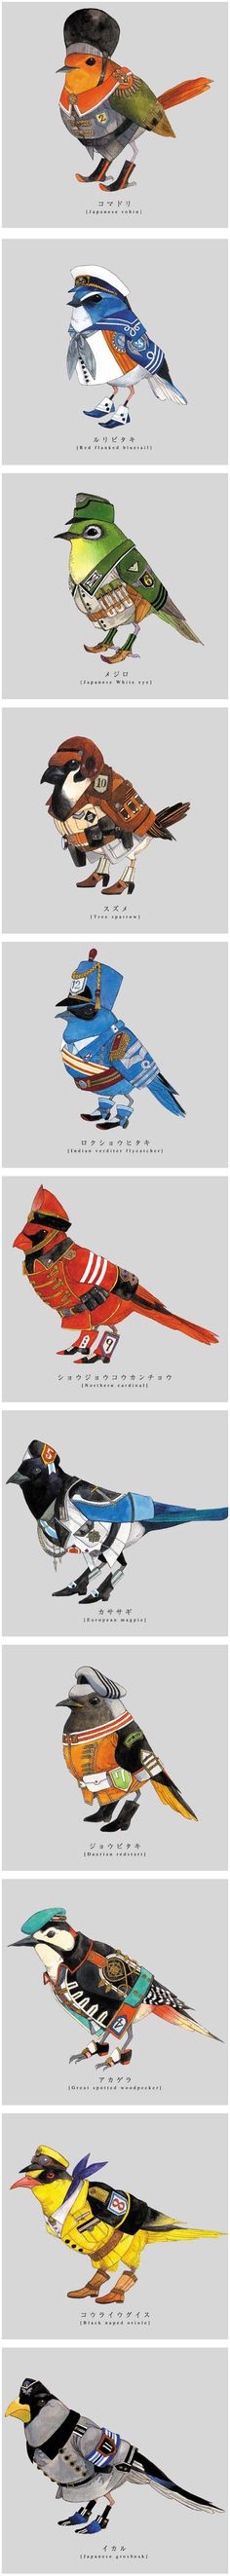 """Torigun"", birds dressed in military uniforms by Japanese artist Sato. I'm-"